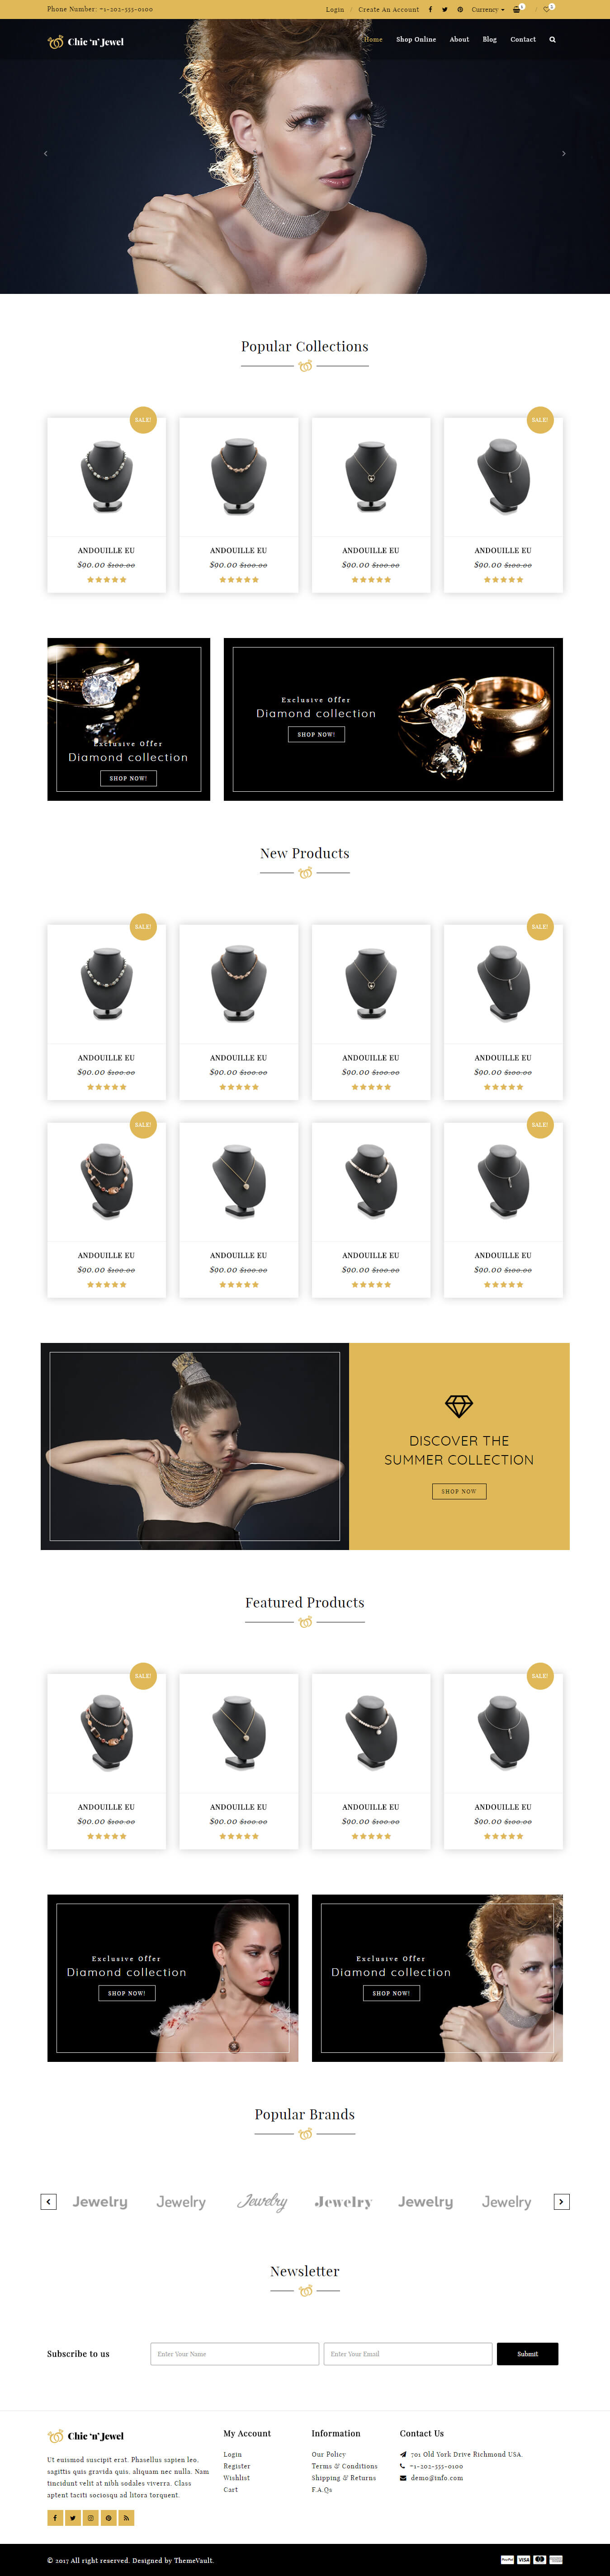 Chic-n-Jewel - Jewellery Ecommerce Website Templates HTML5